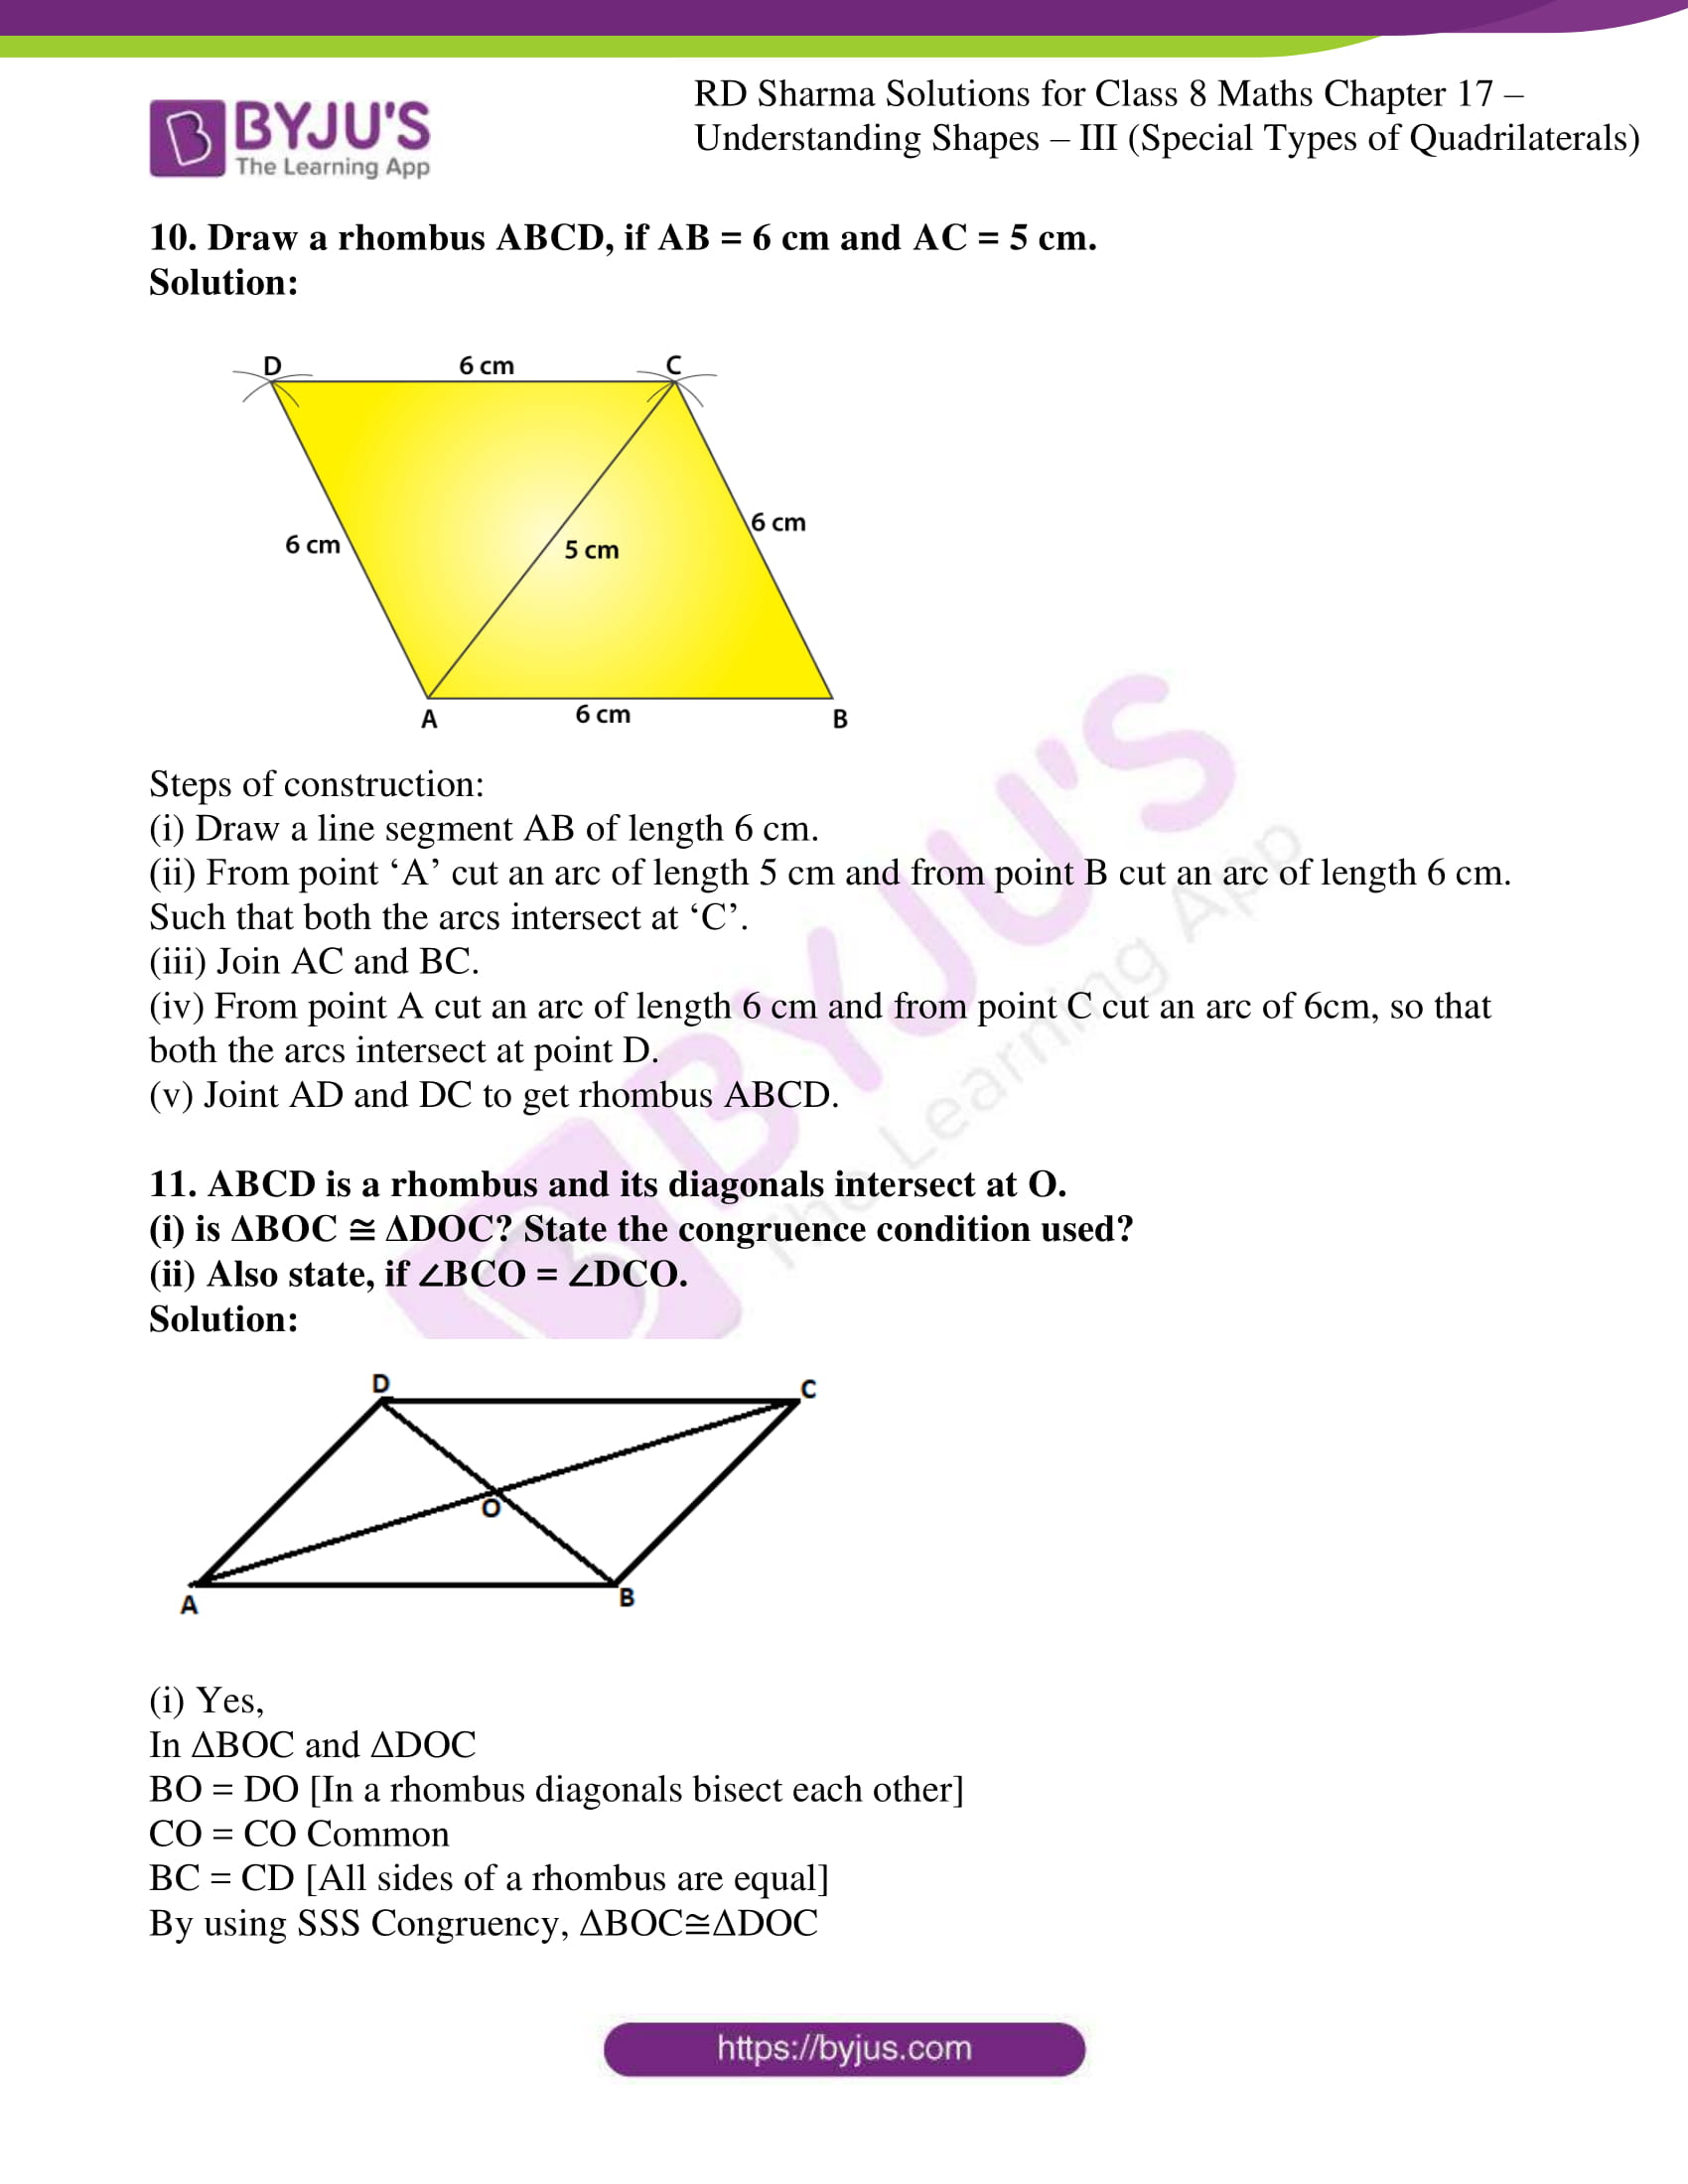 rd sharma class 8 maths chapter 17 exercise 2